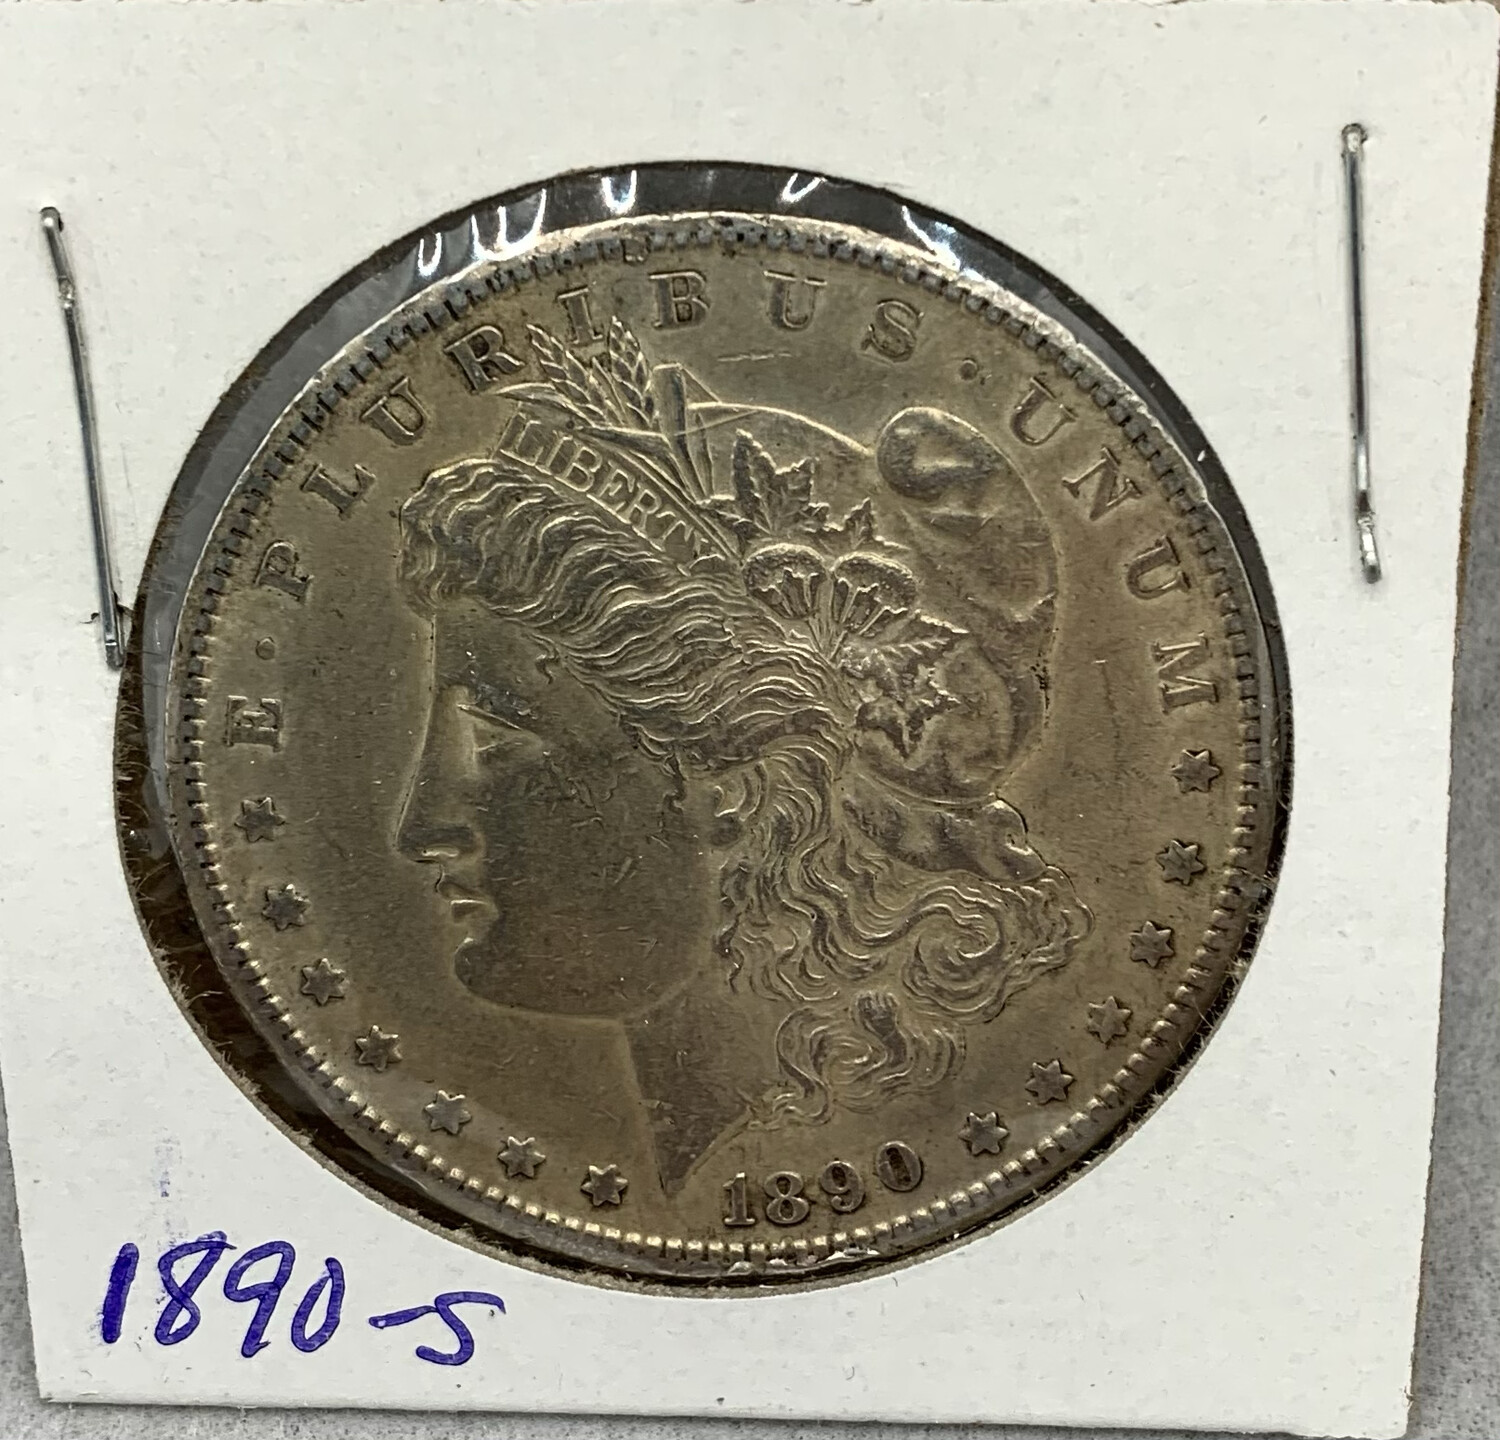 1890 Morgan Silver Dollar - San Francisco Mint - Some Toning